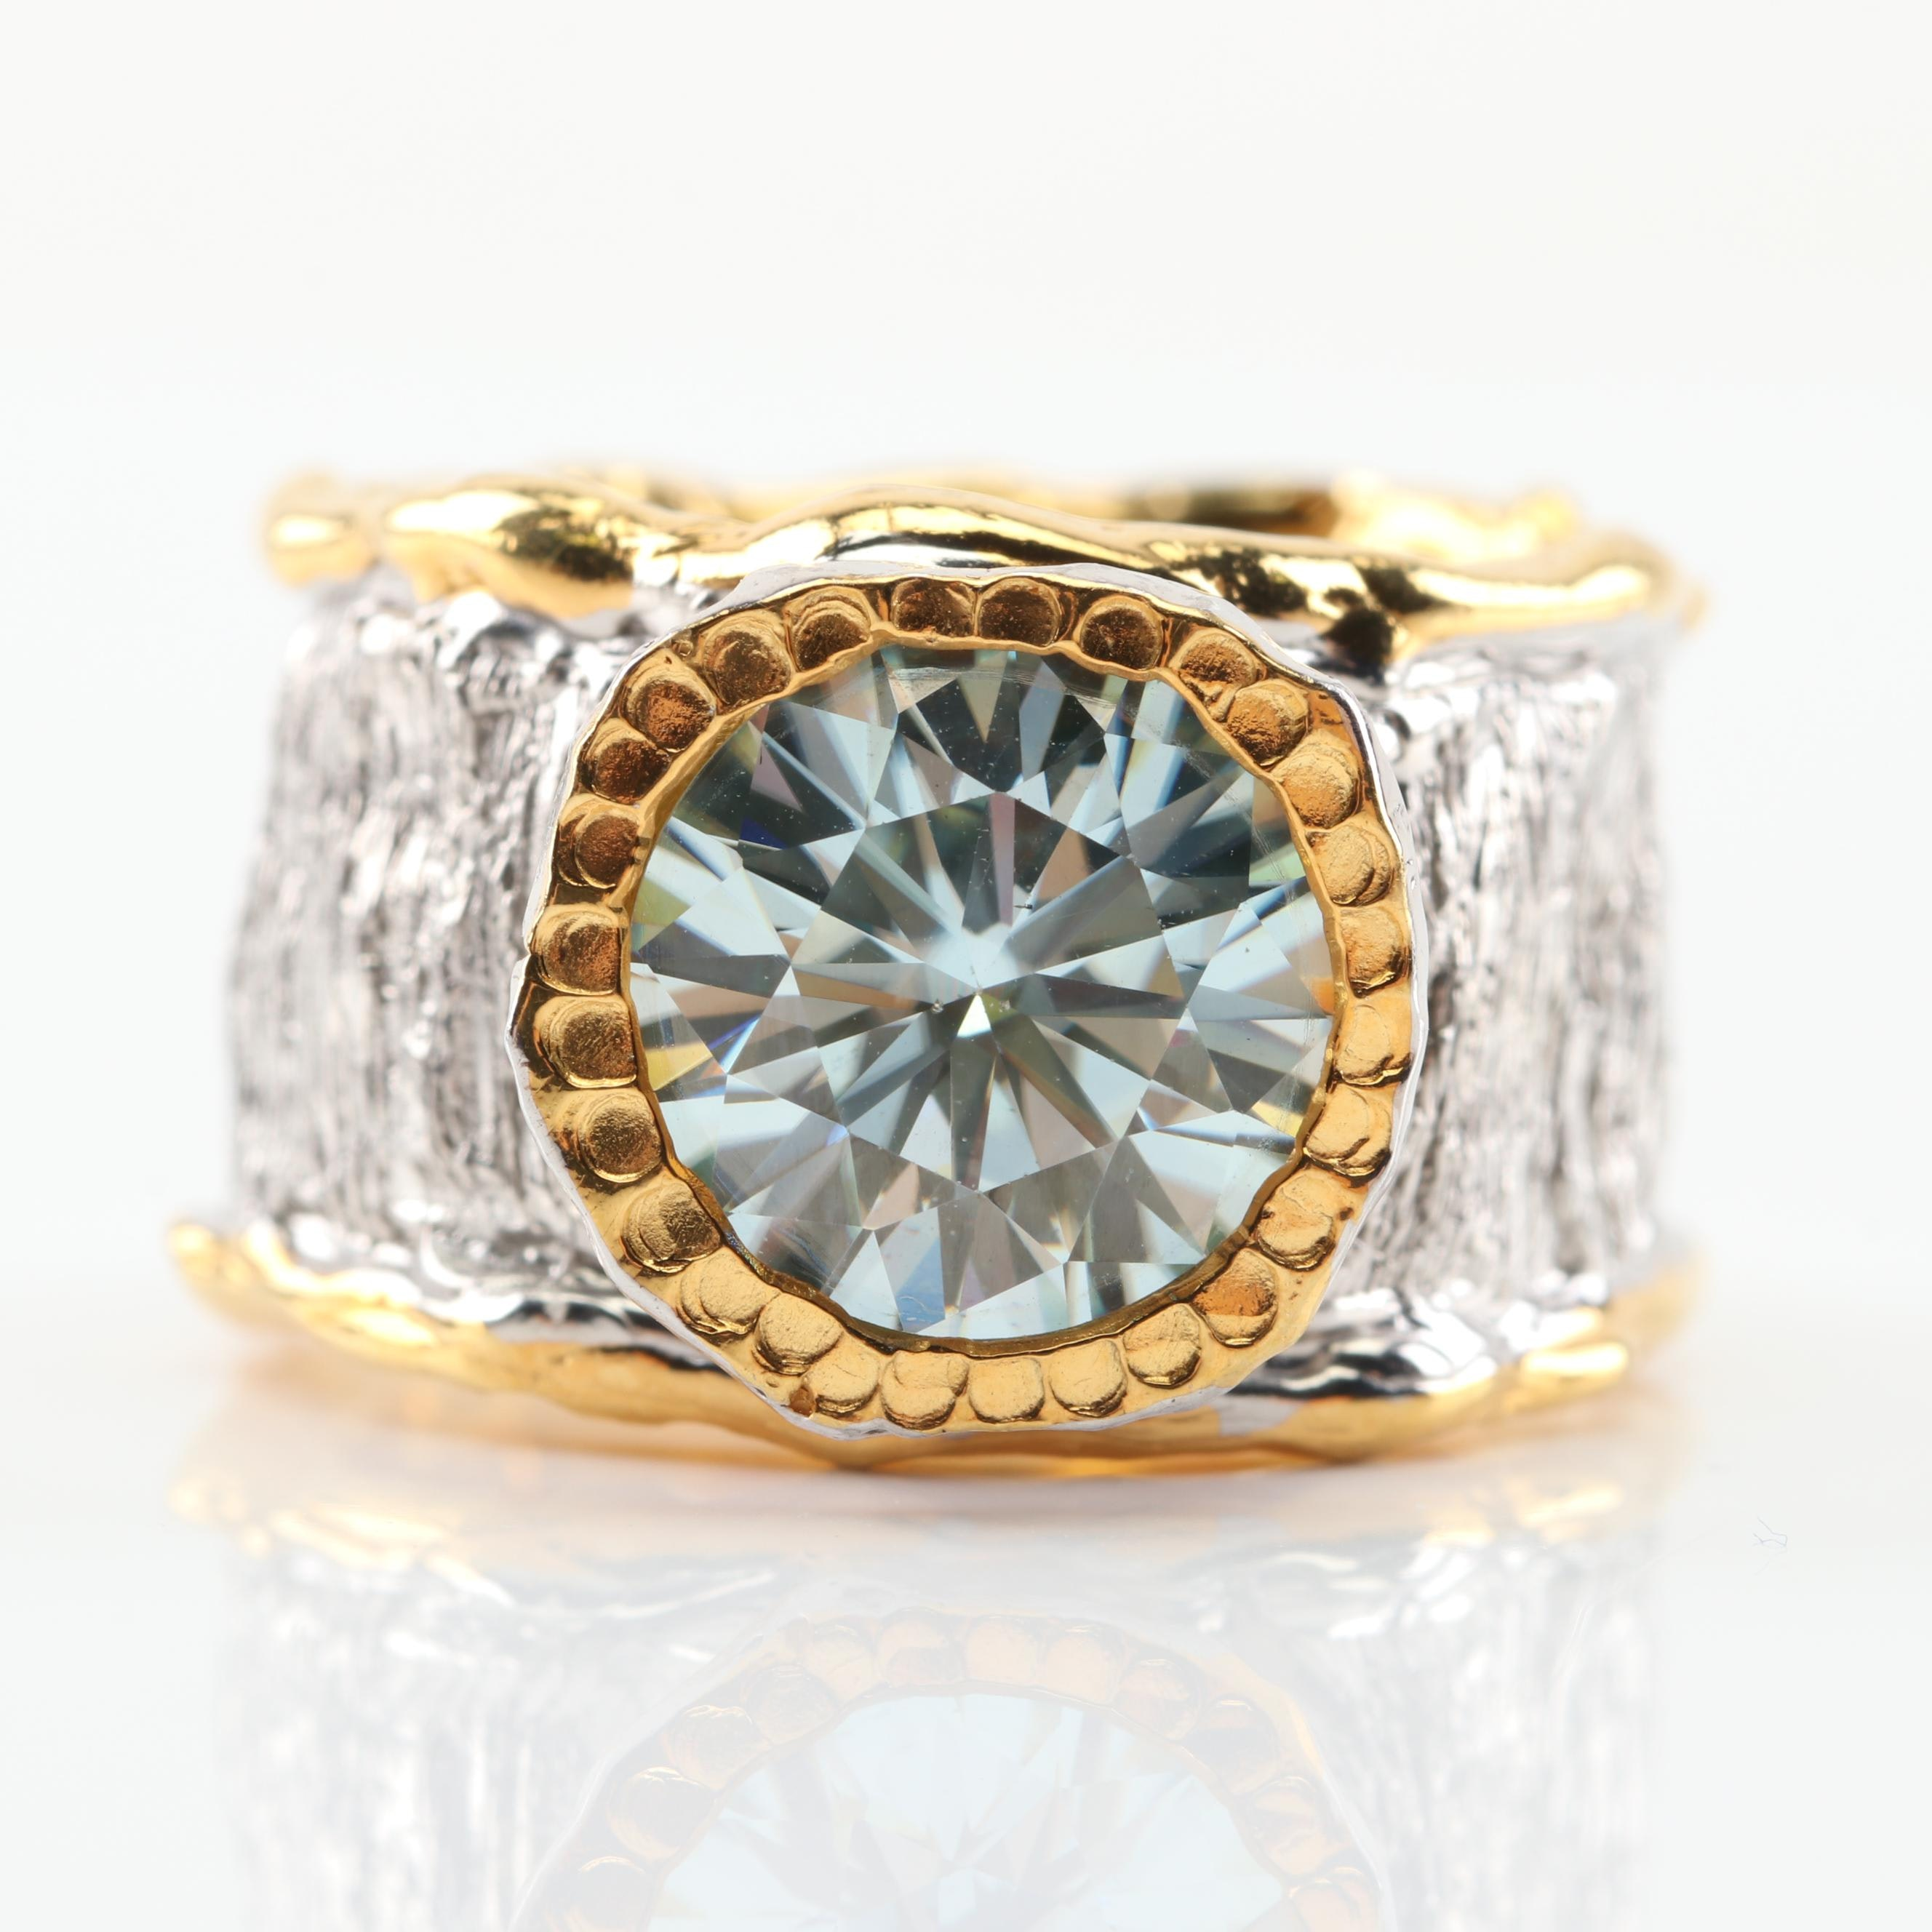 Sterling Silver Moissanite Ring with Gold Wash